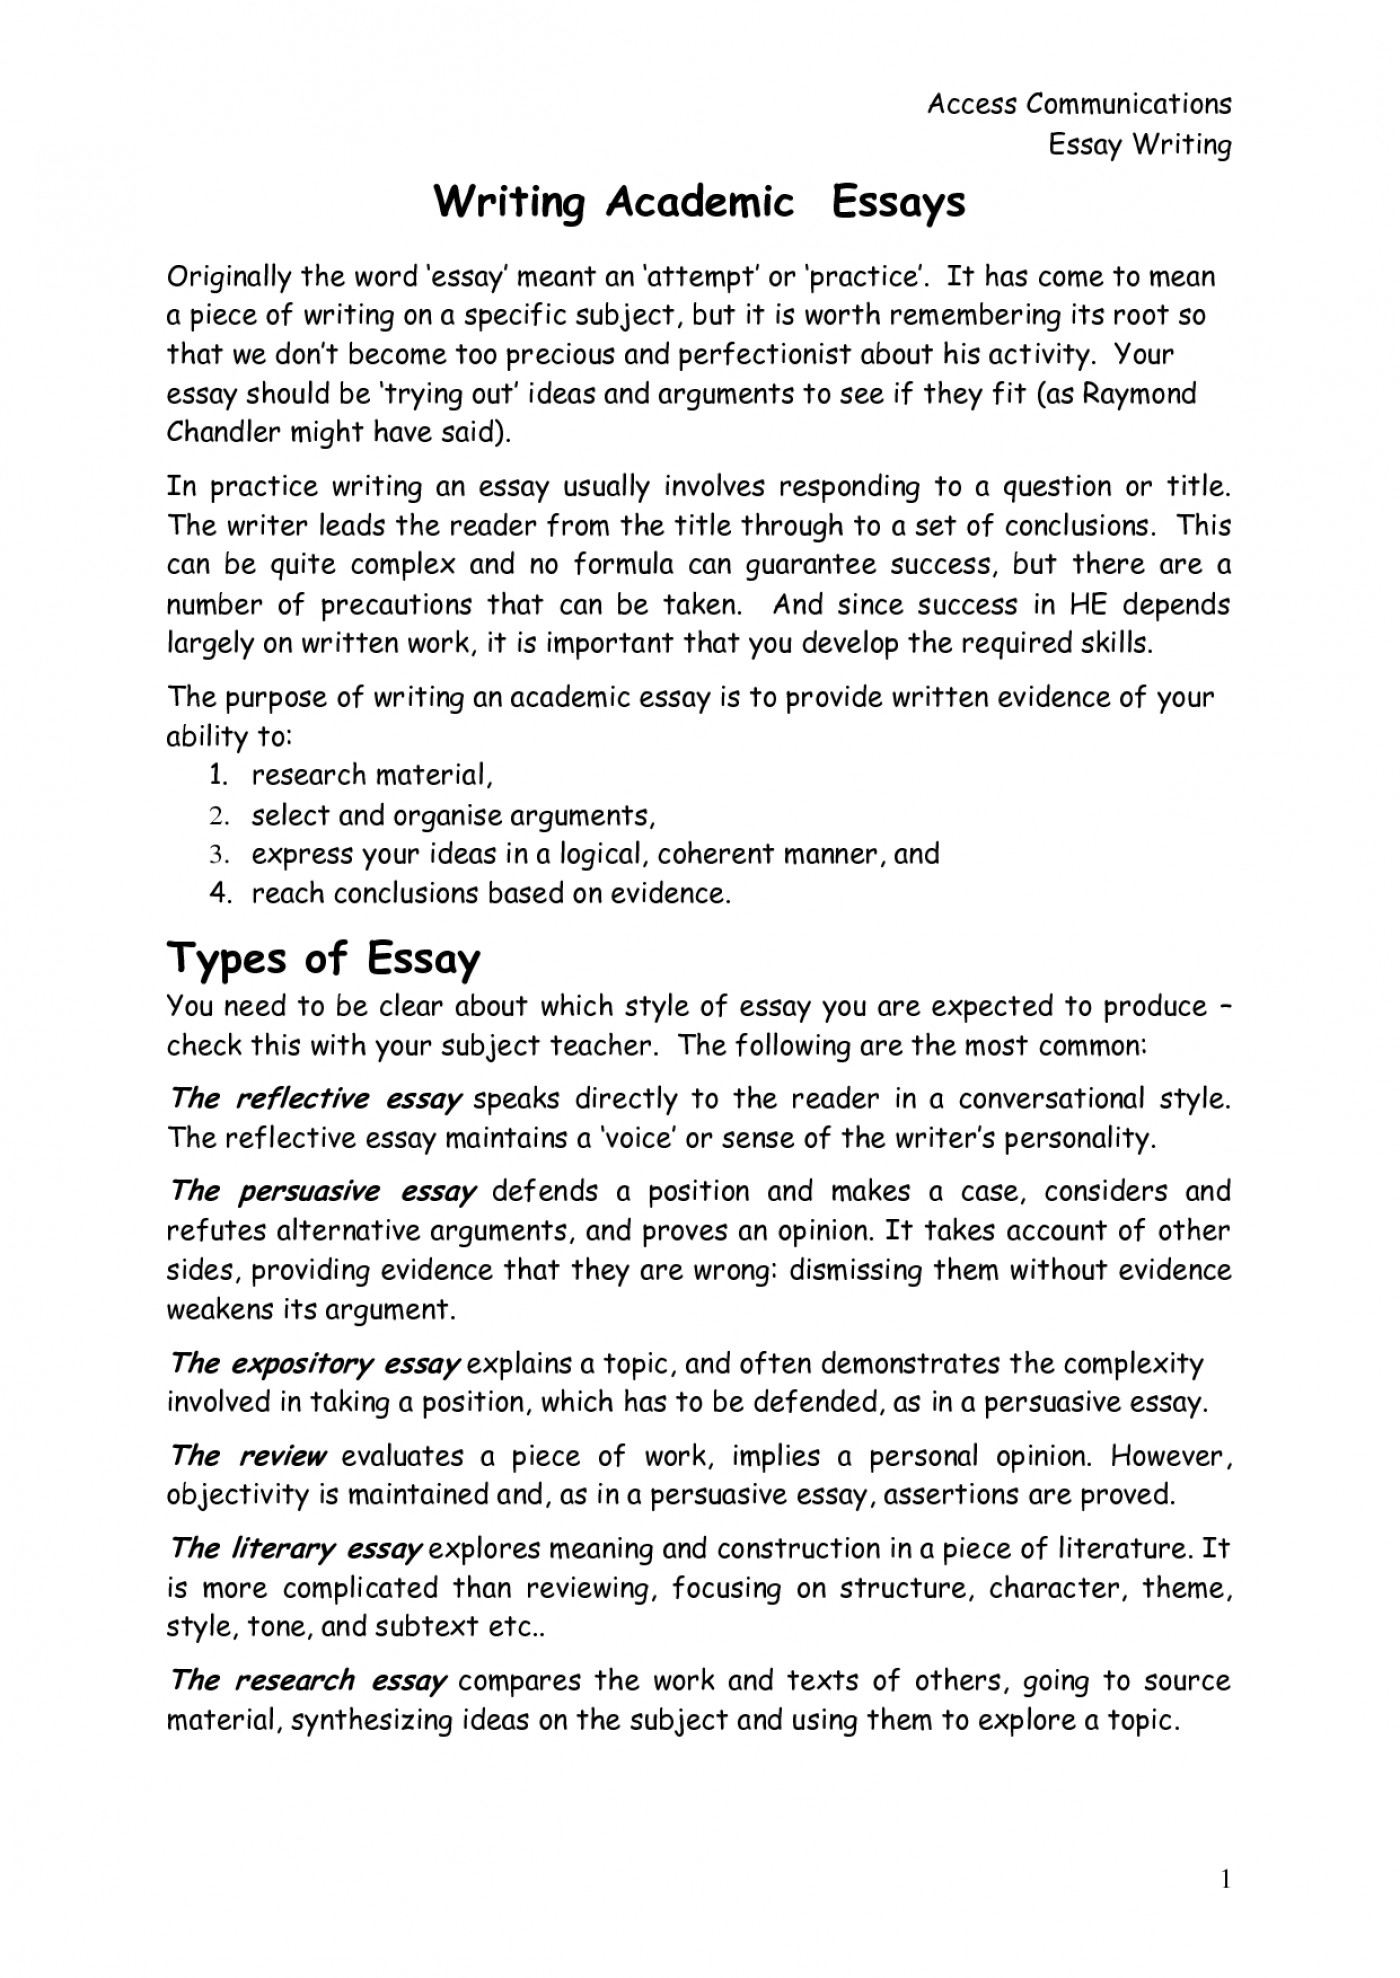 016 Reflective Essay On Academic Writings Beautiful Examples Writing Pdf College Sample 1400